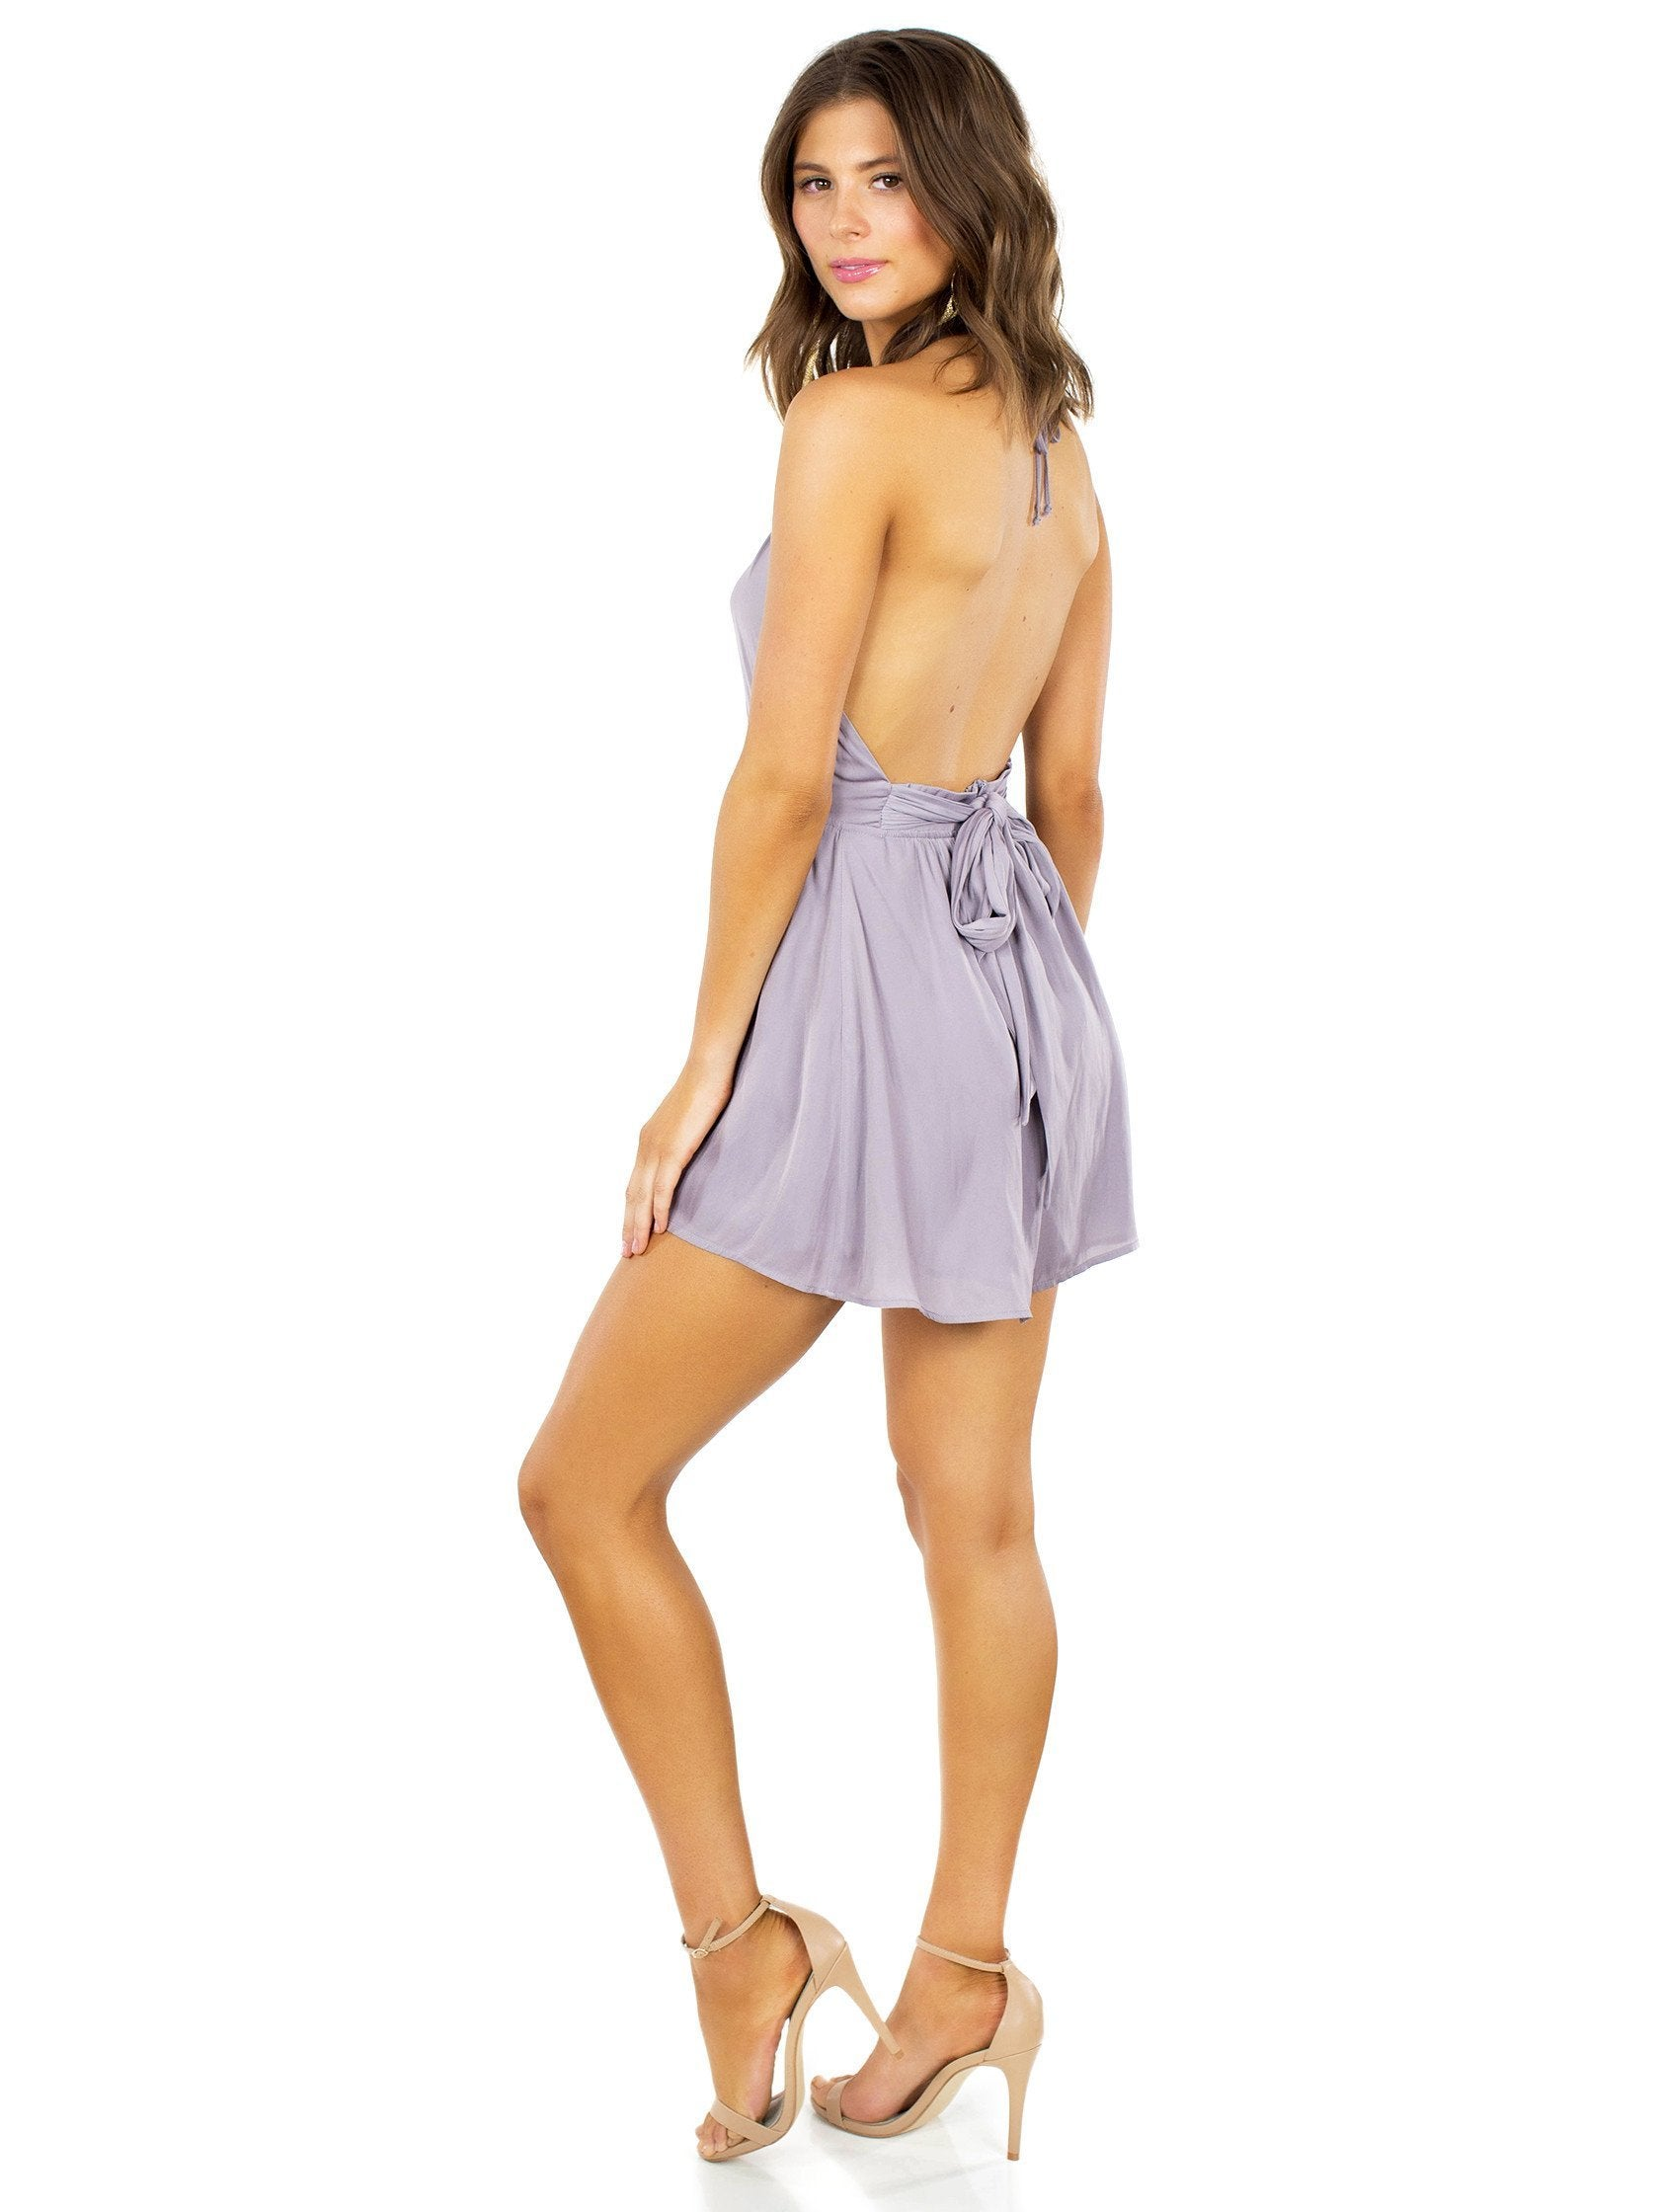 Women wearing a romper rental from Lush called Take A Chance Romper